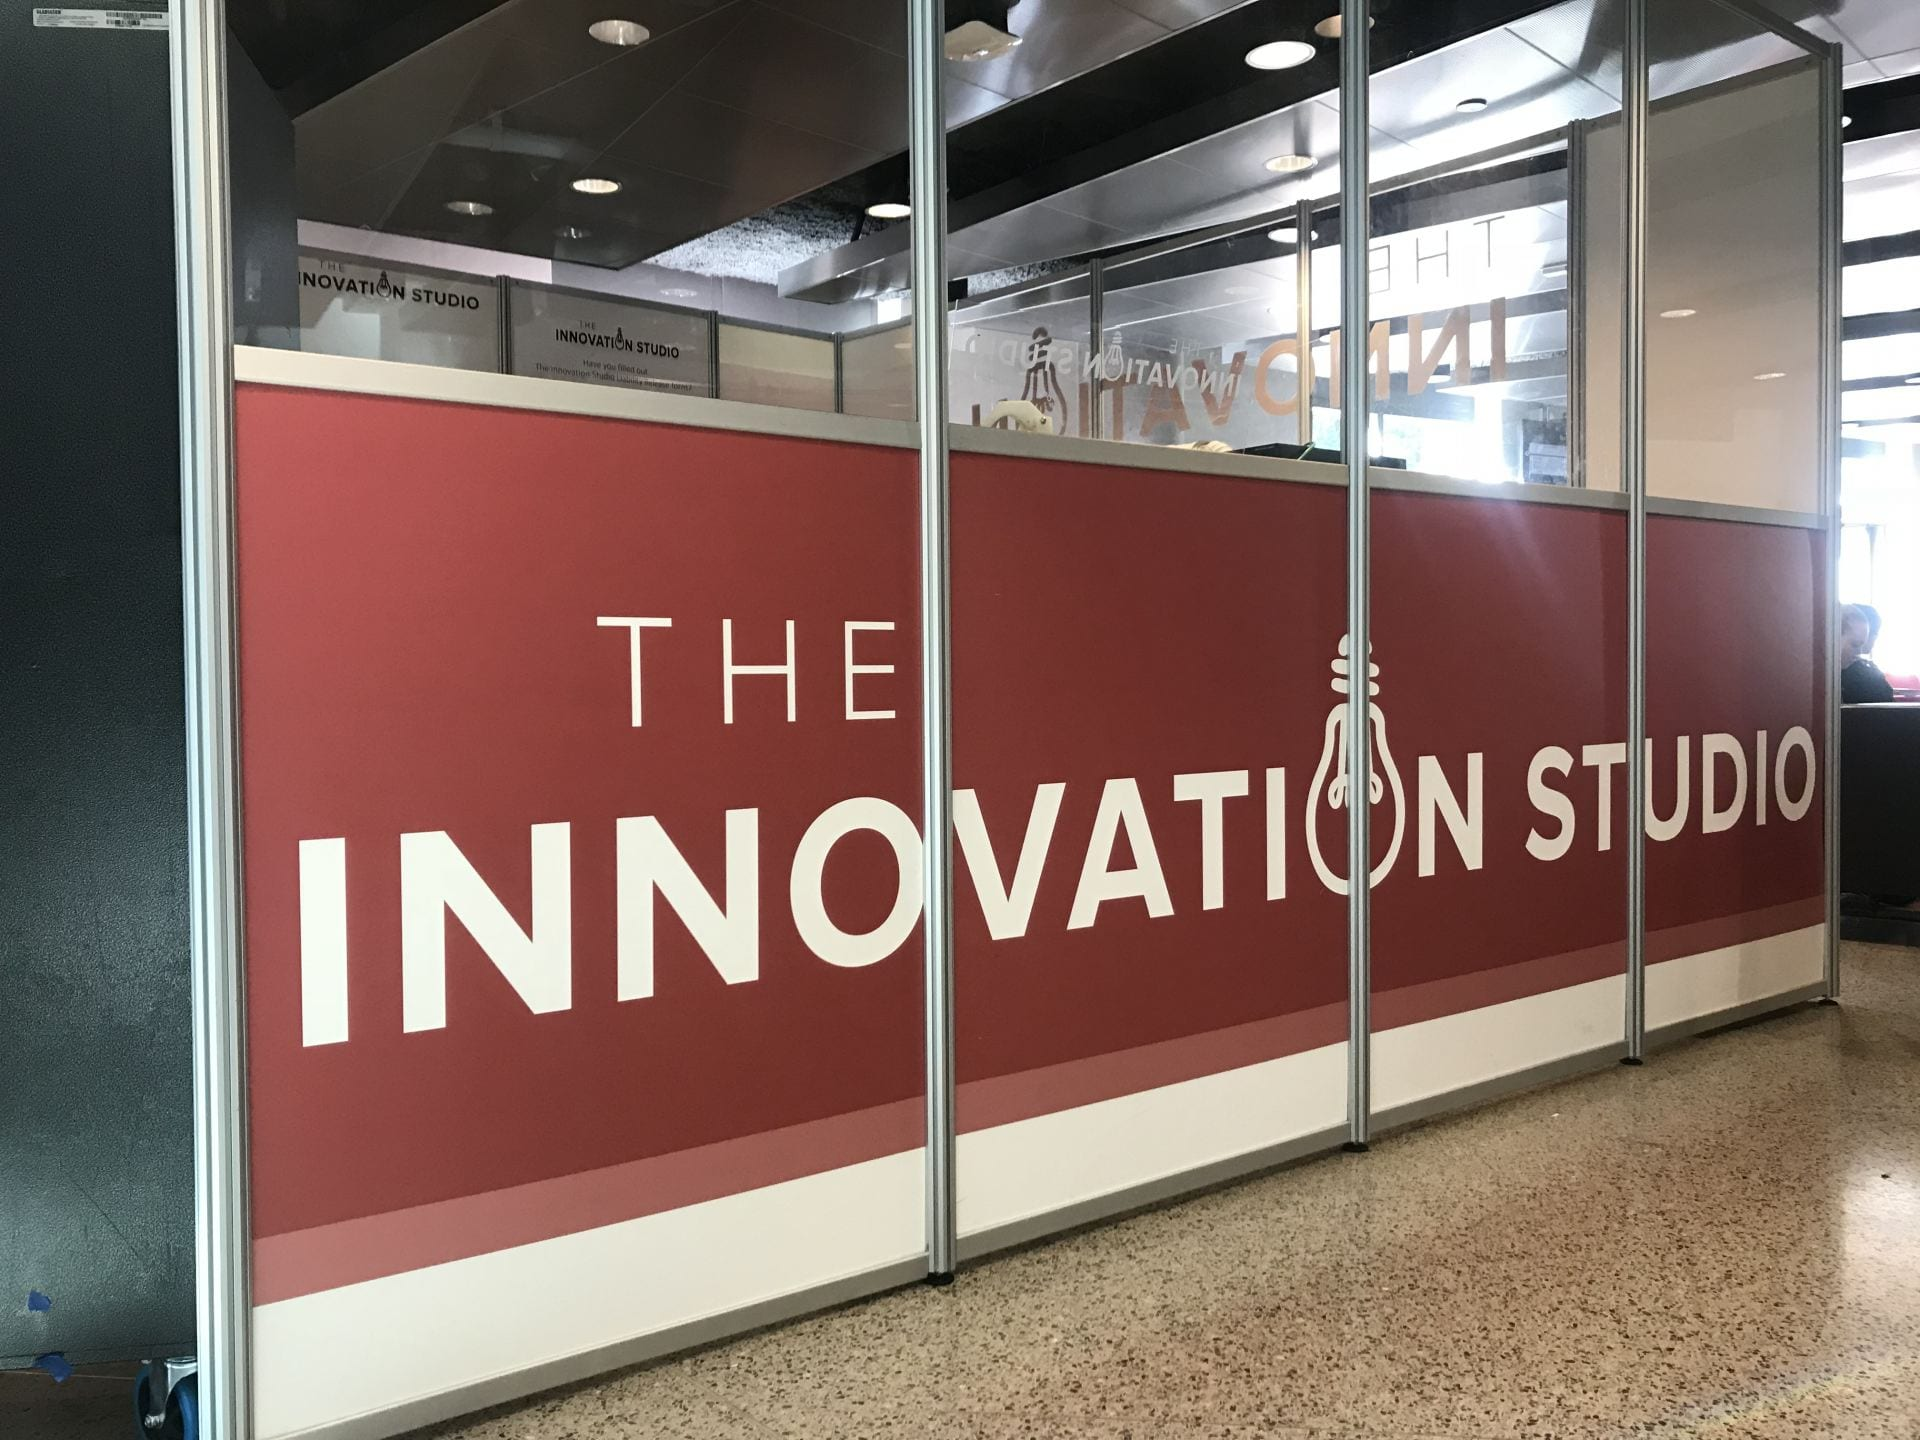 Innovation Studio To Spur Creative Ideas On Health Care Solutions